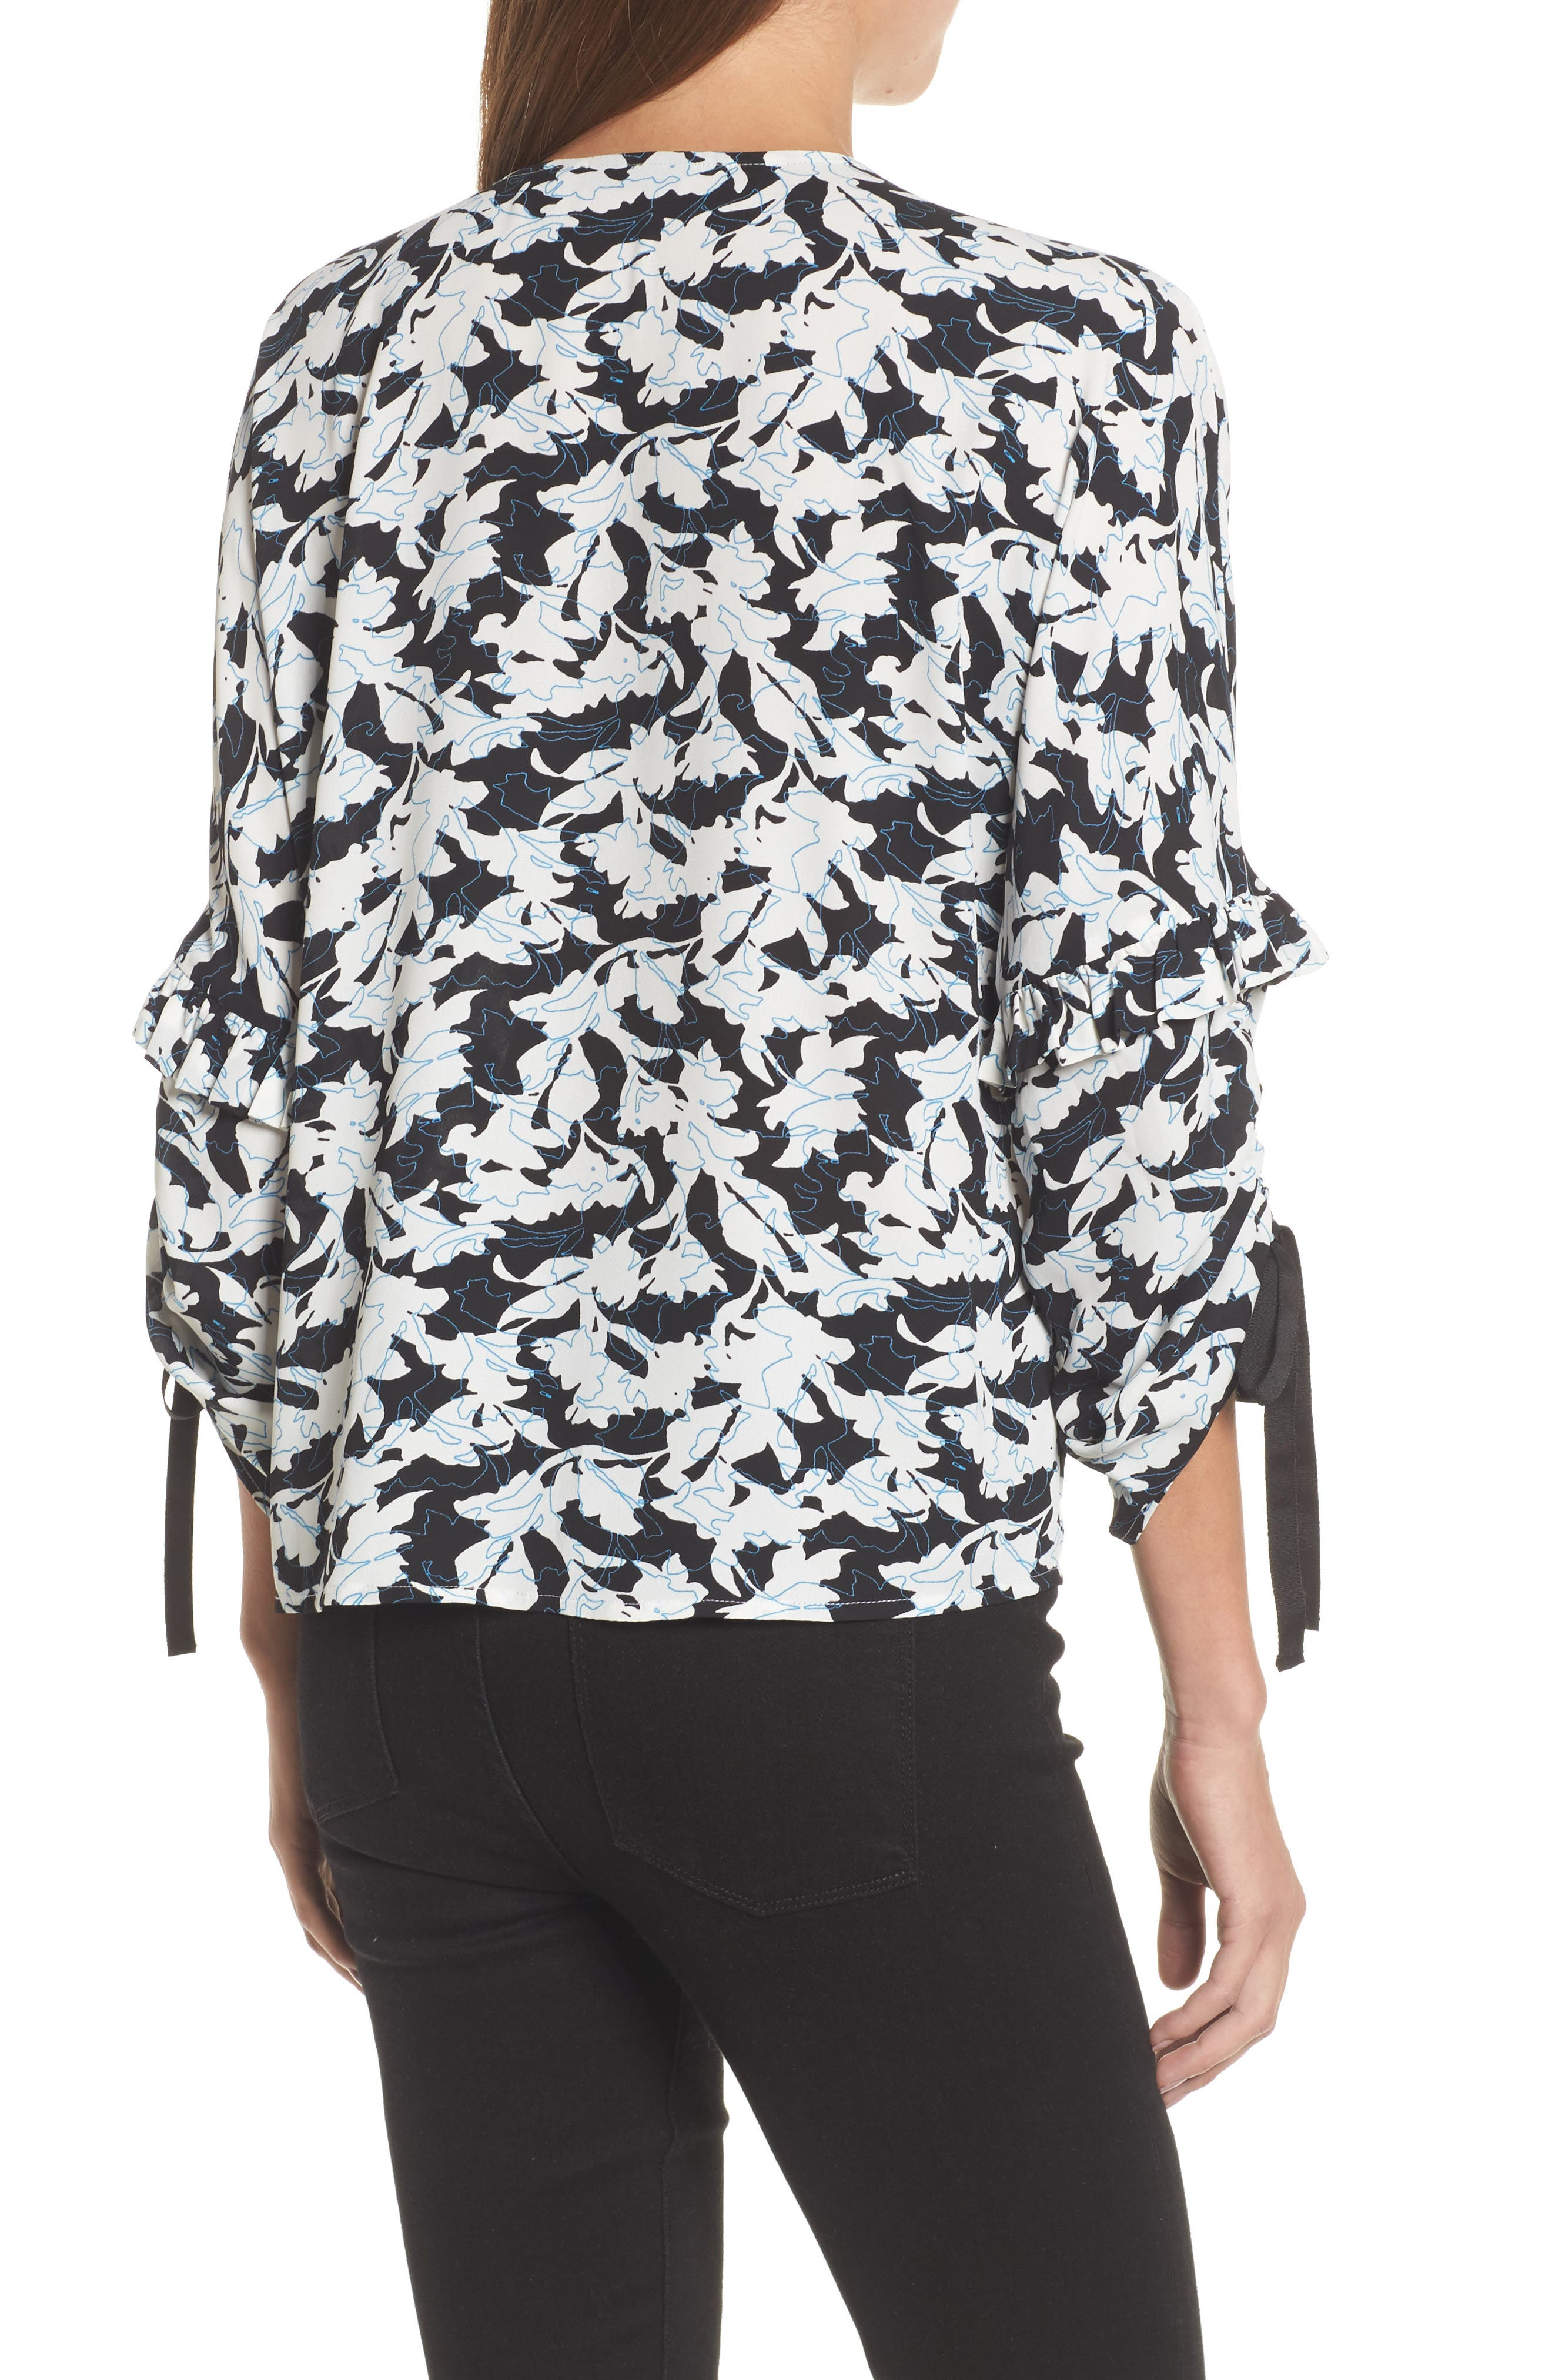 Ruched Tie Sleeve Top,                             Alternate thumbnail 2, color,                             001